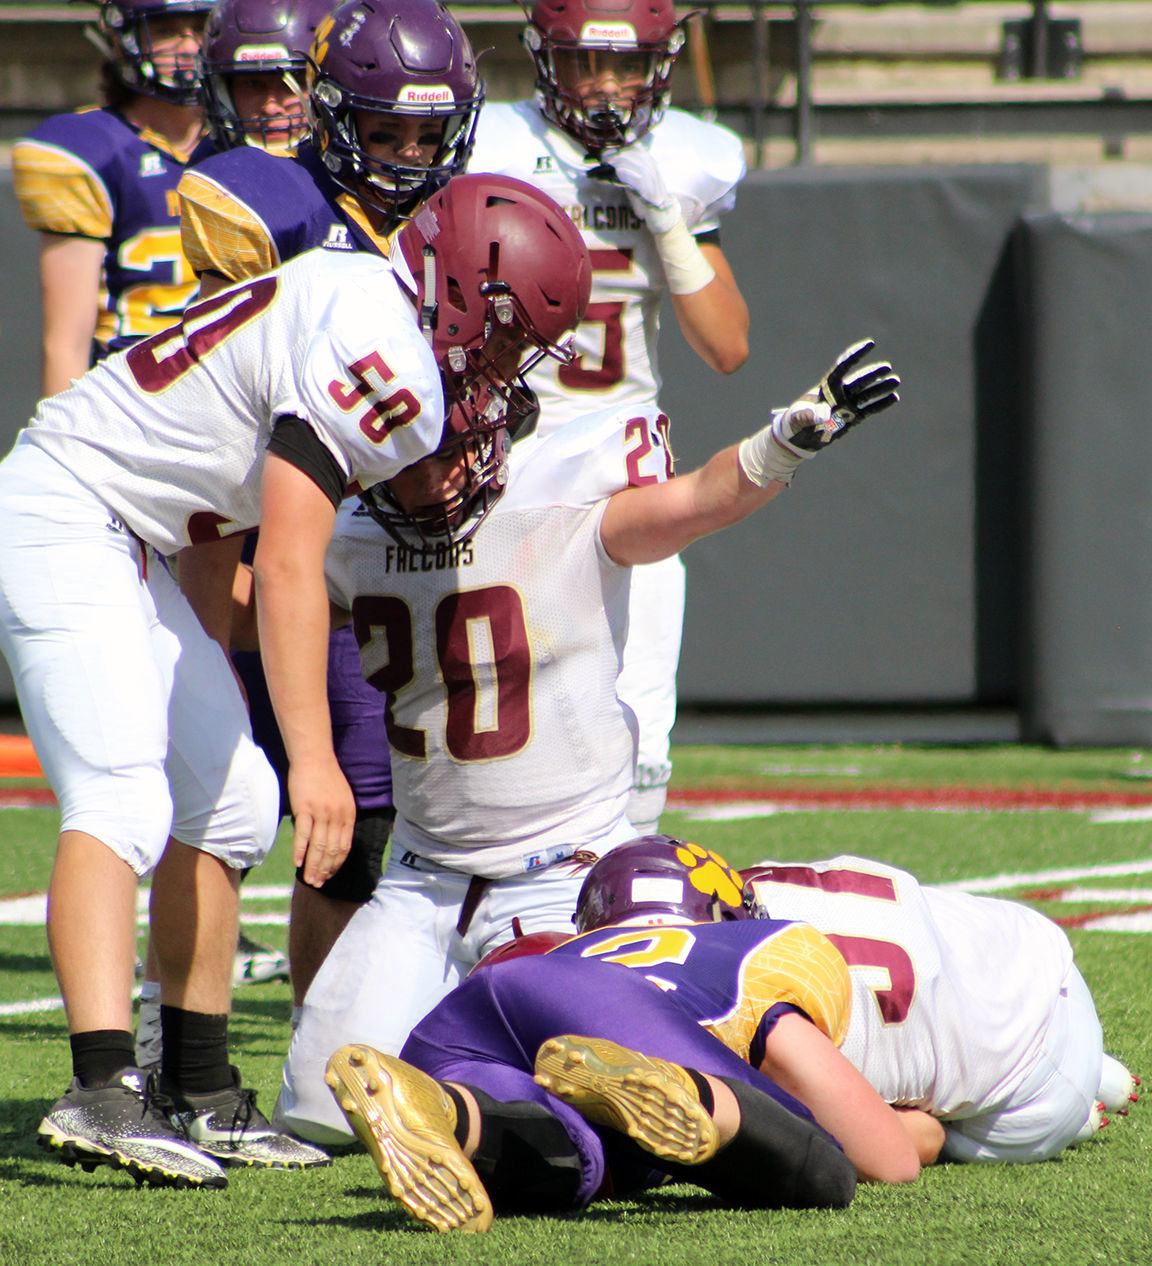 Florence fumble recovery (copy)